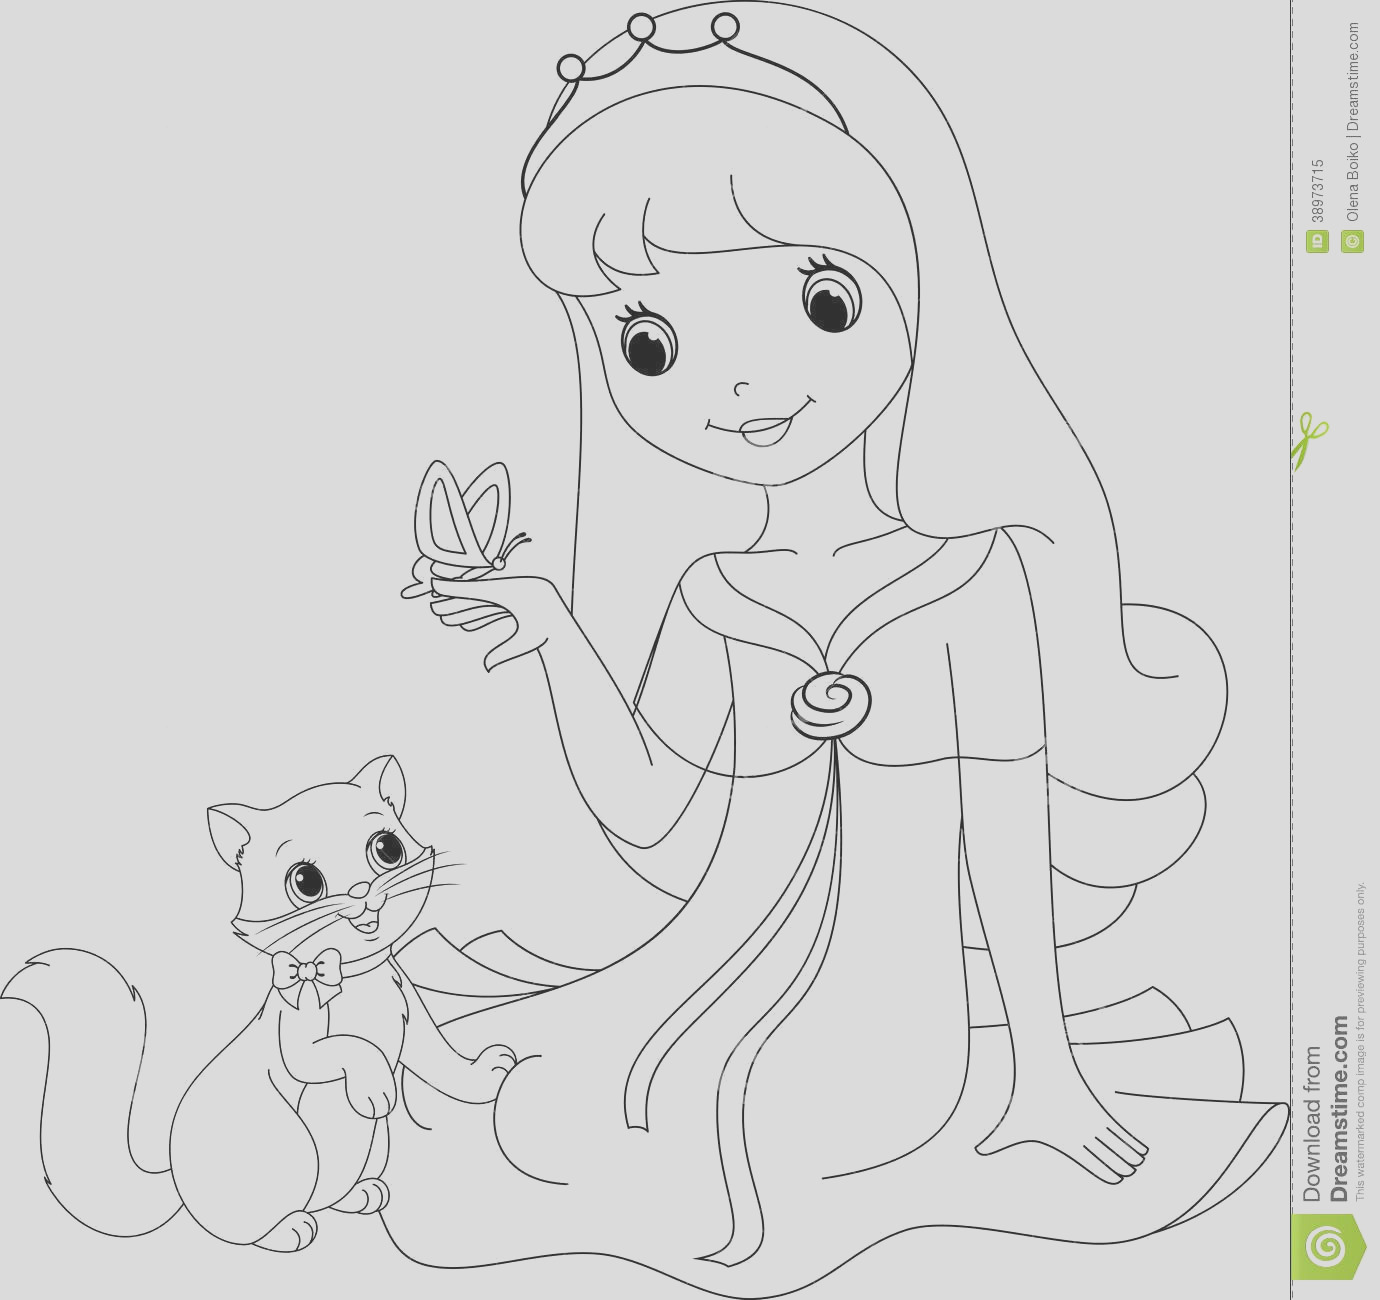 royalty free stock photo princess coloring page beautiful her cat looking butterfly image